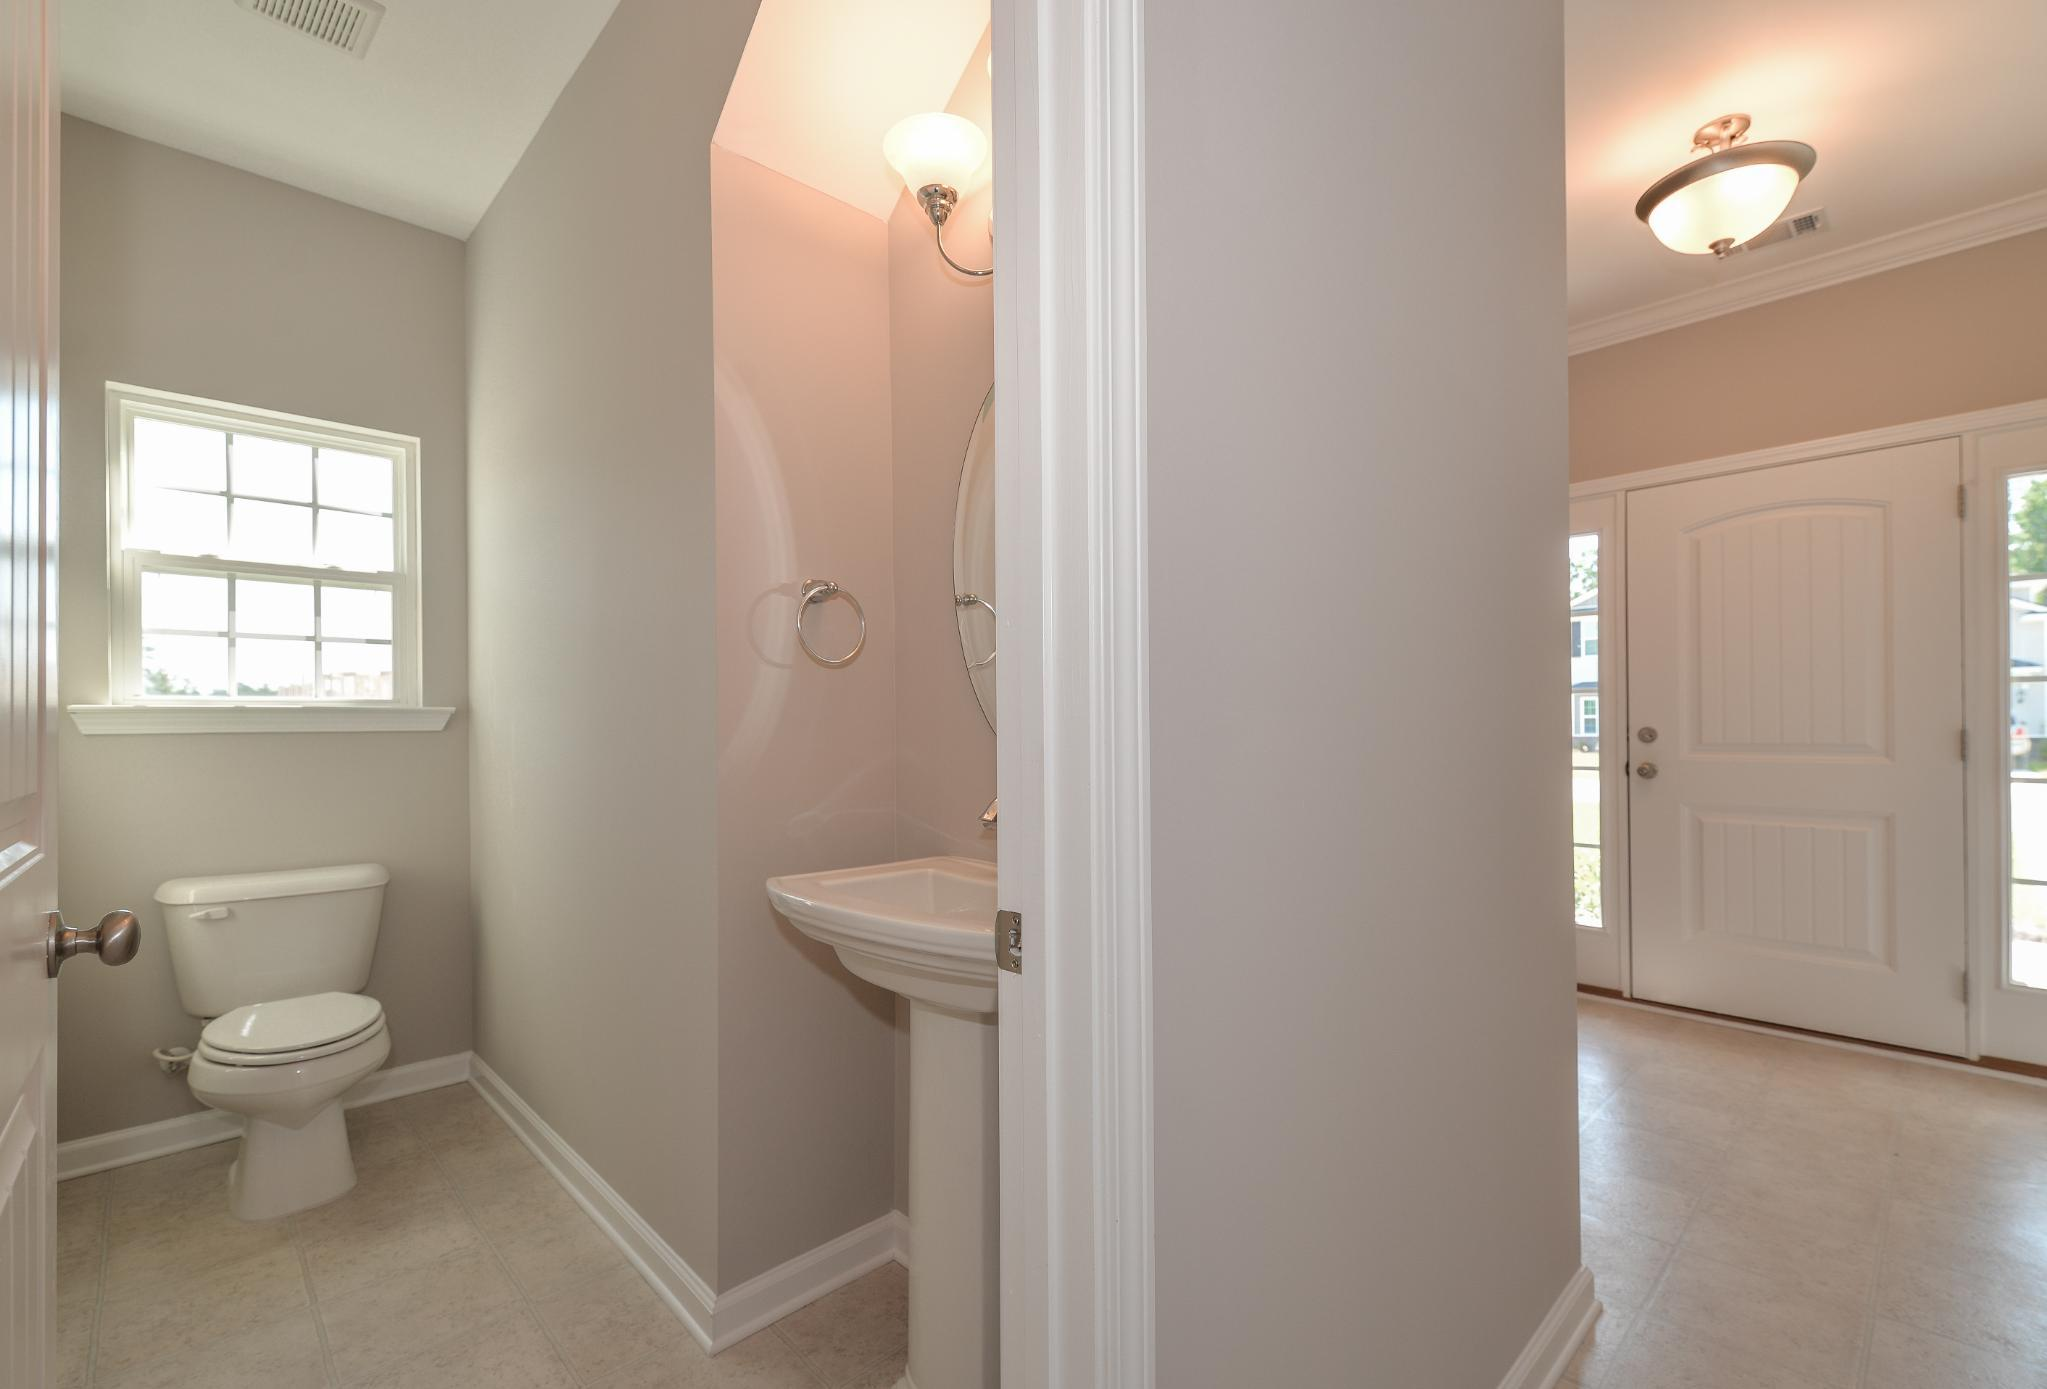 Living Area featured in the St. Helena By Ernest Homes in Savannah, GA